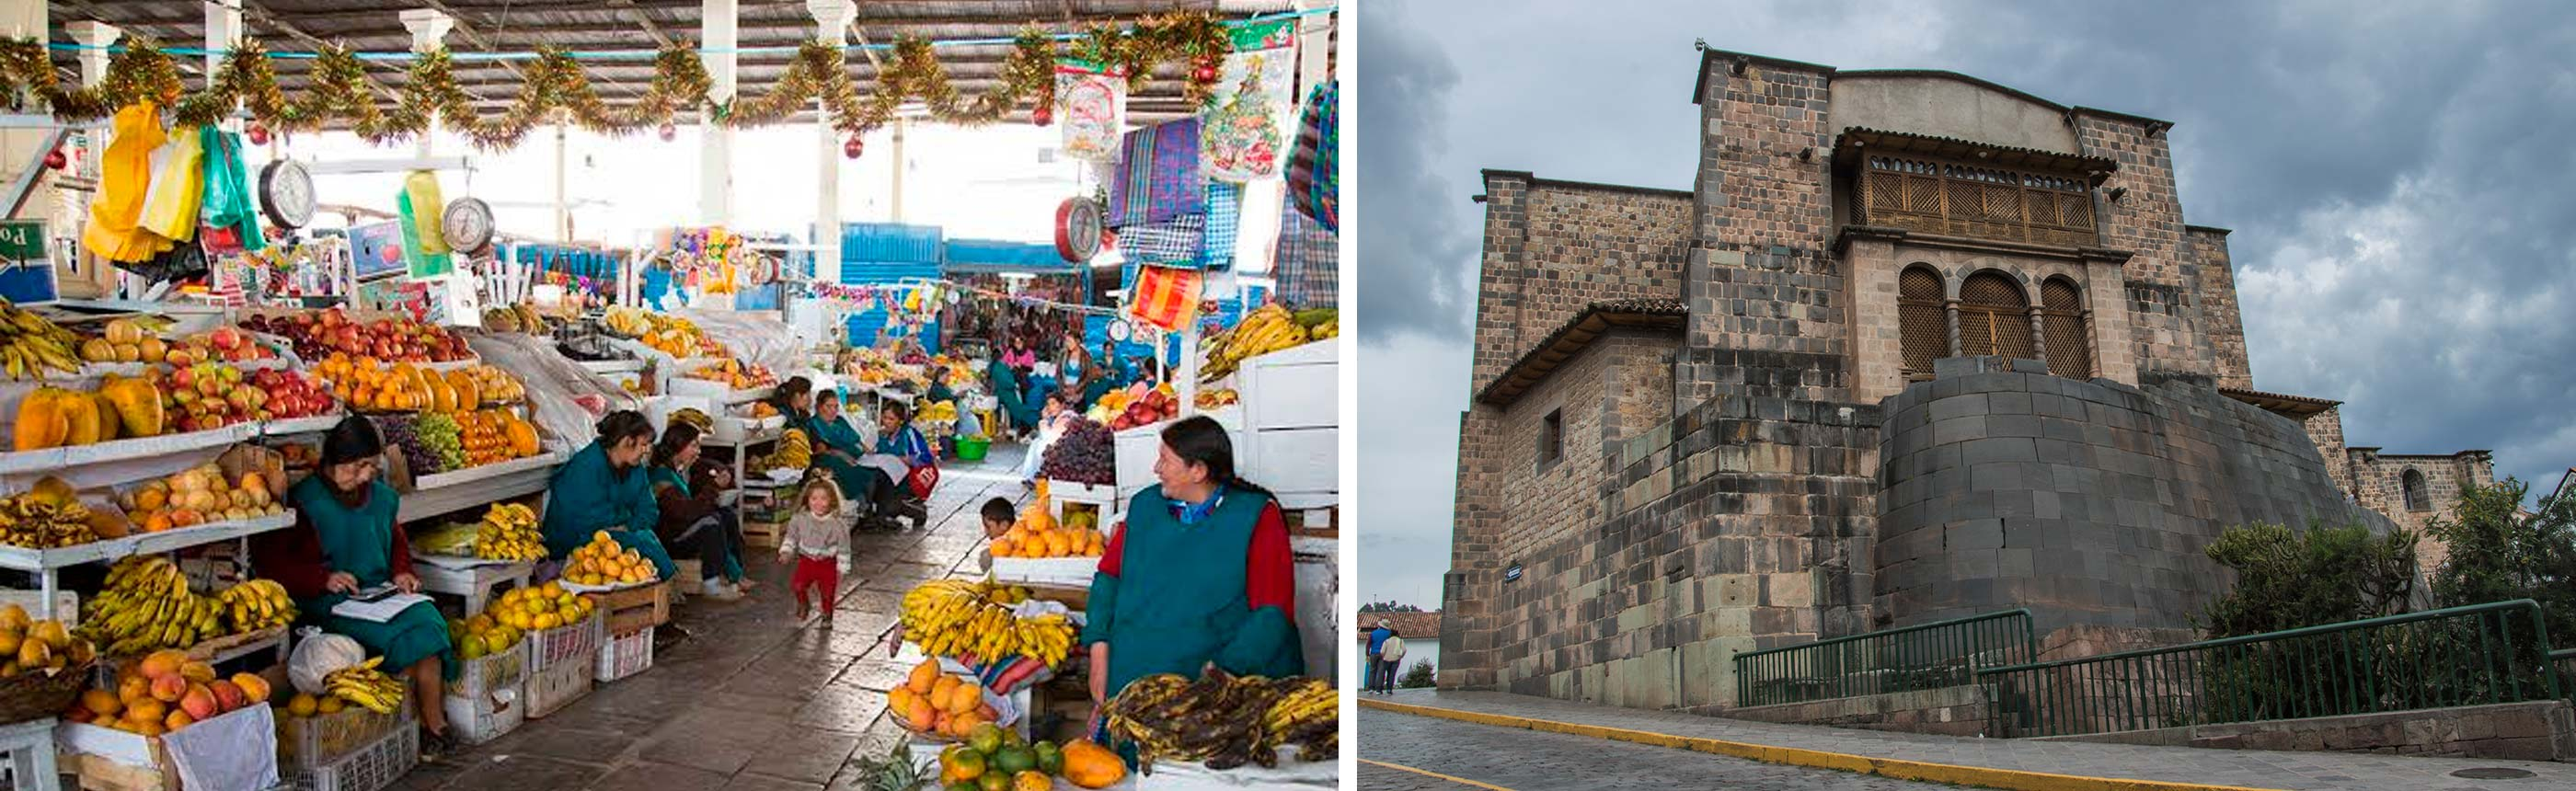 Walking Tour in Cusco, Koricancha